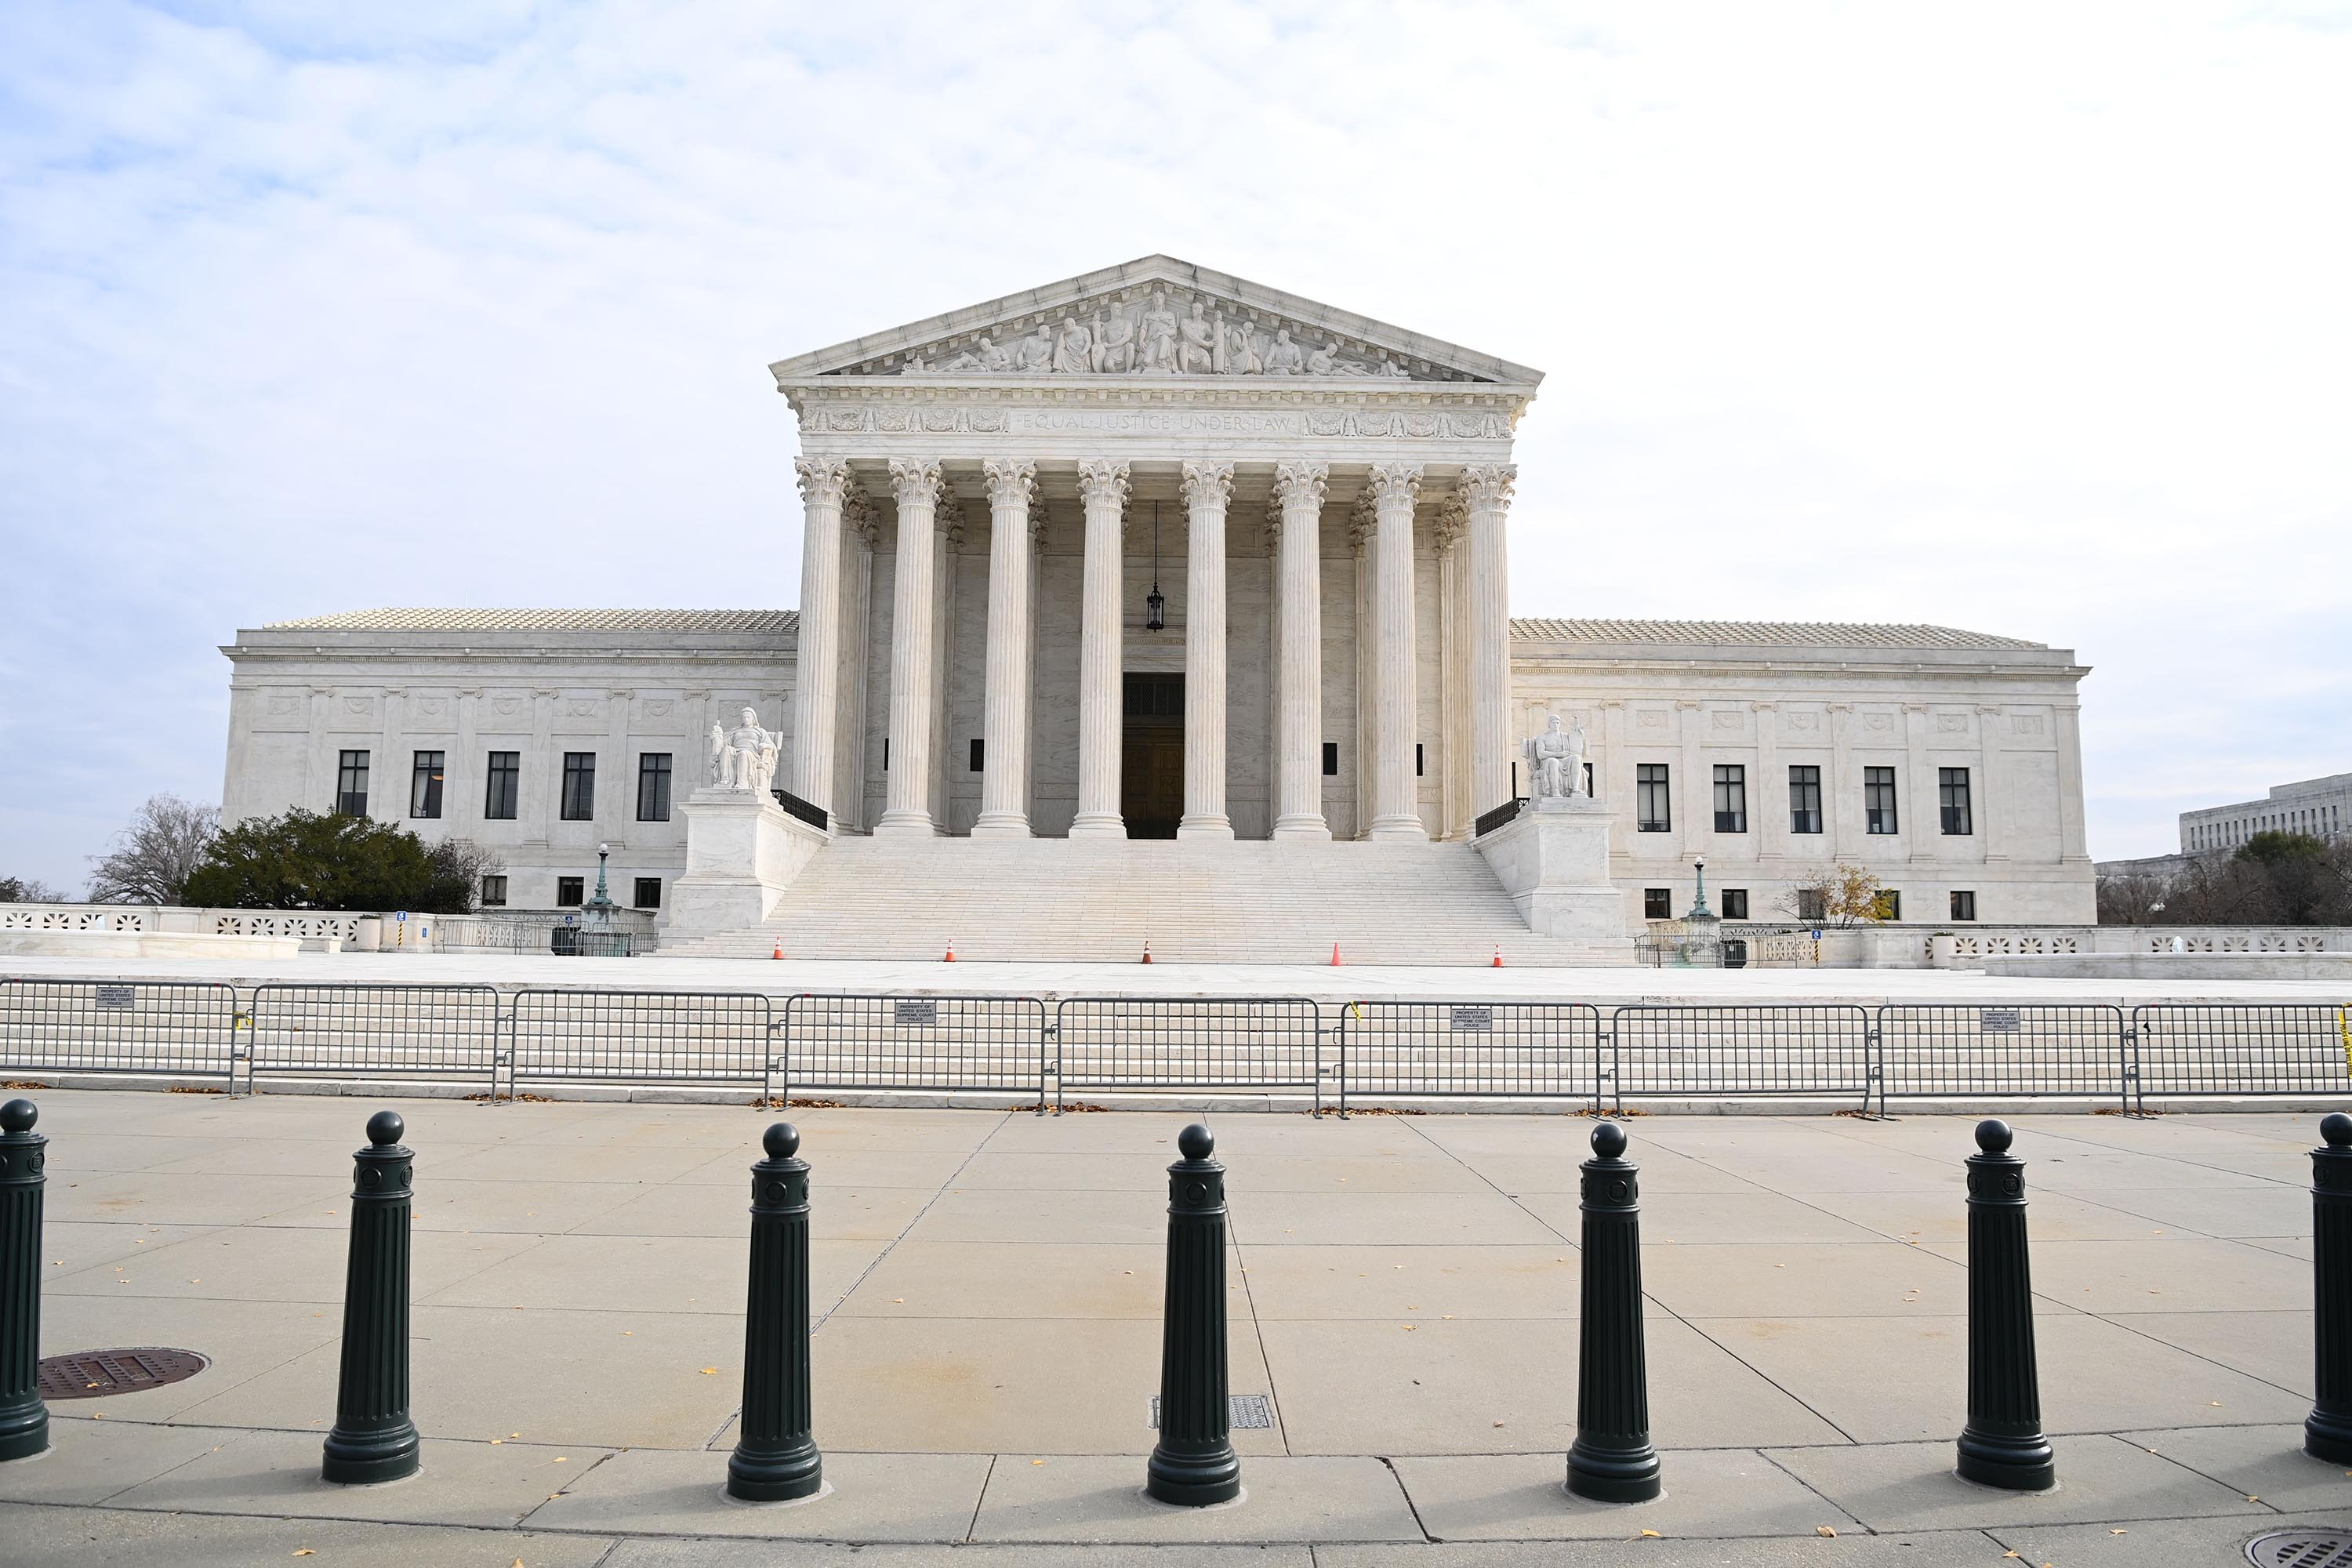 Supreme Court asked to make foreign intelligence court opinions public